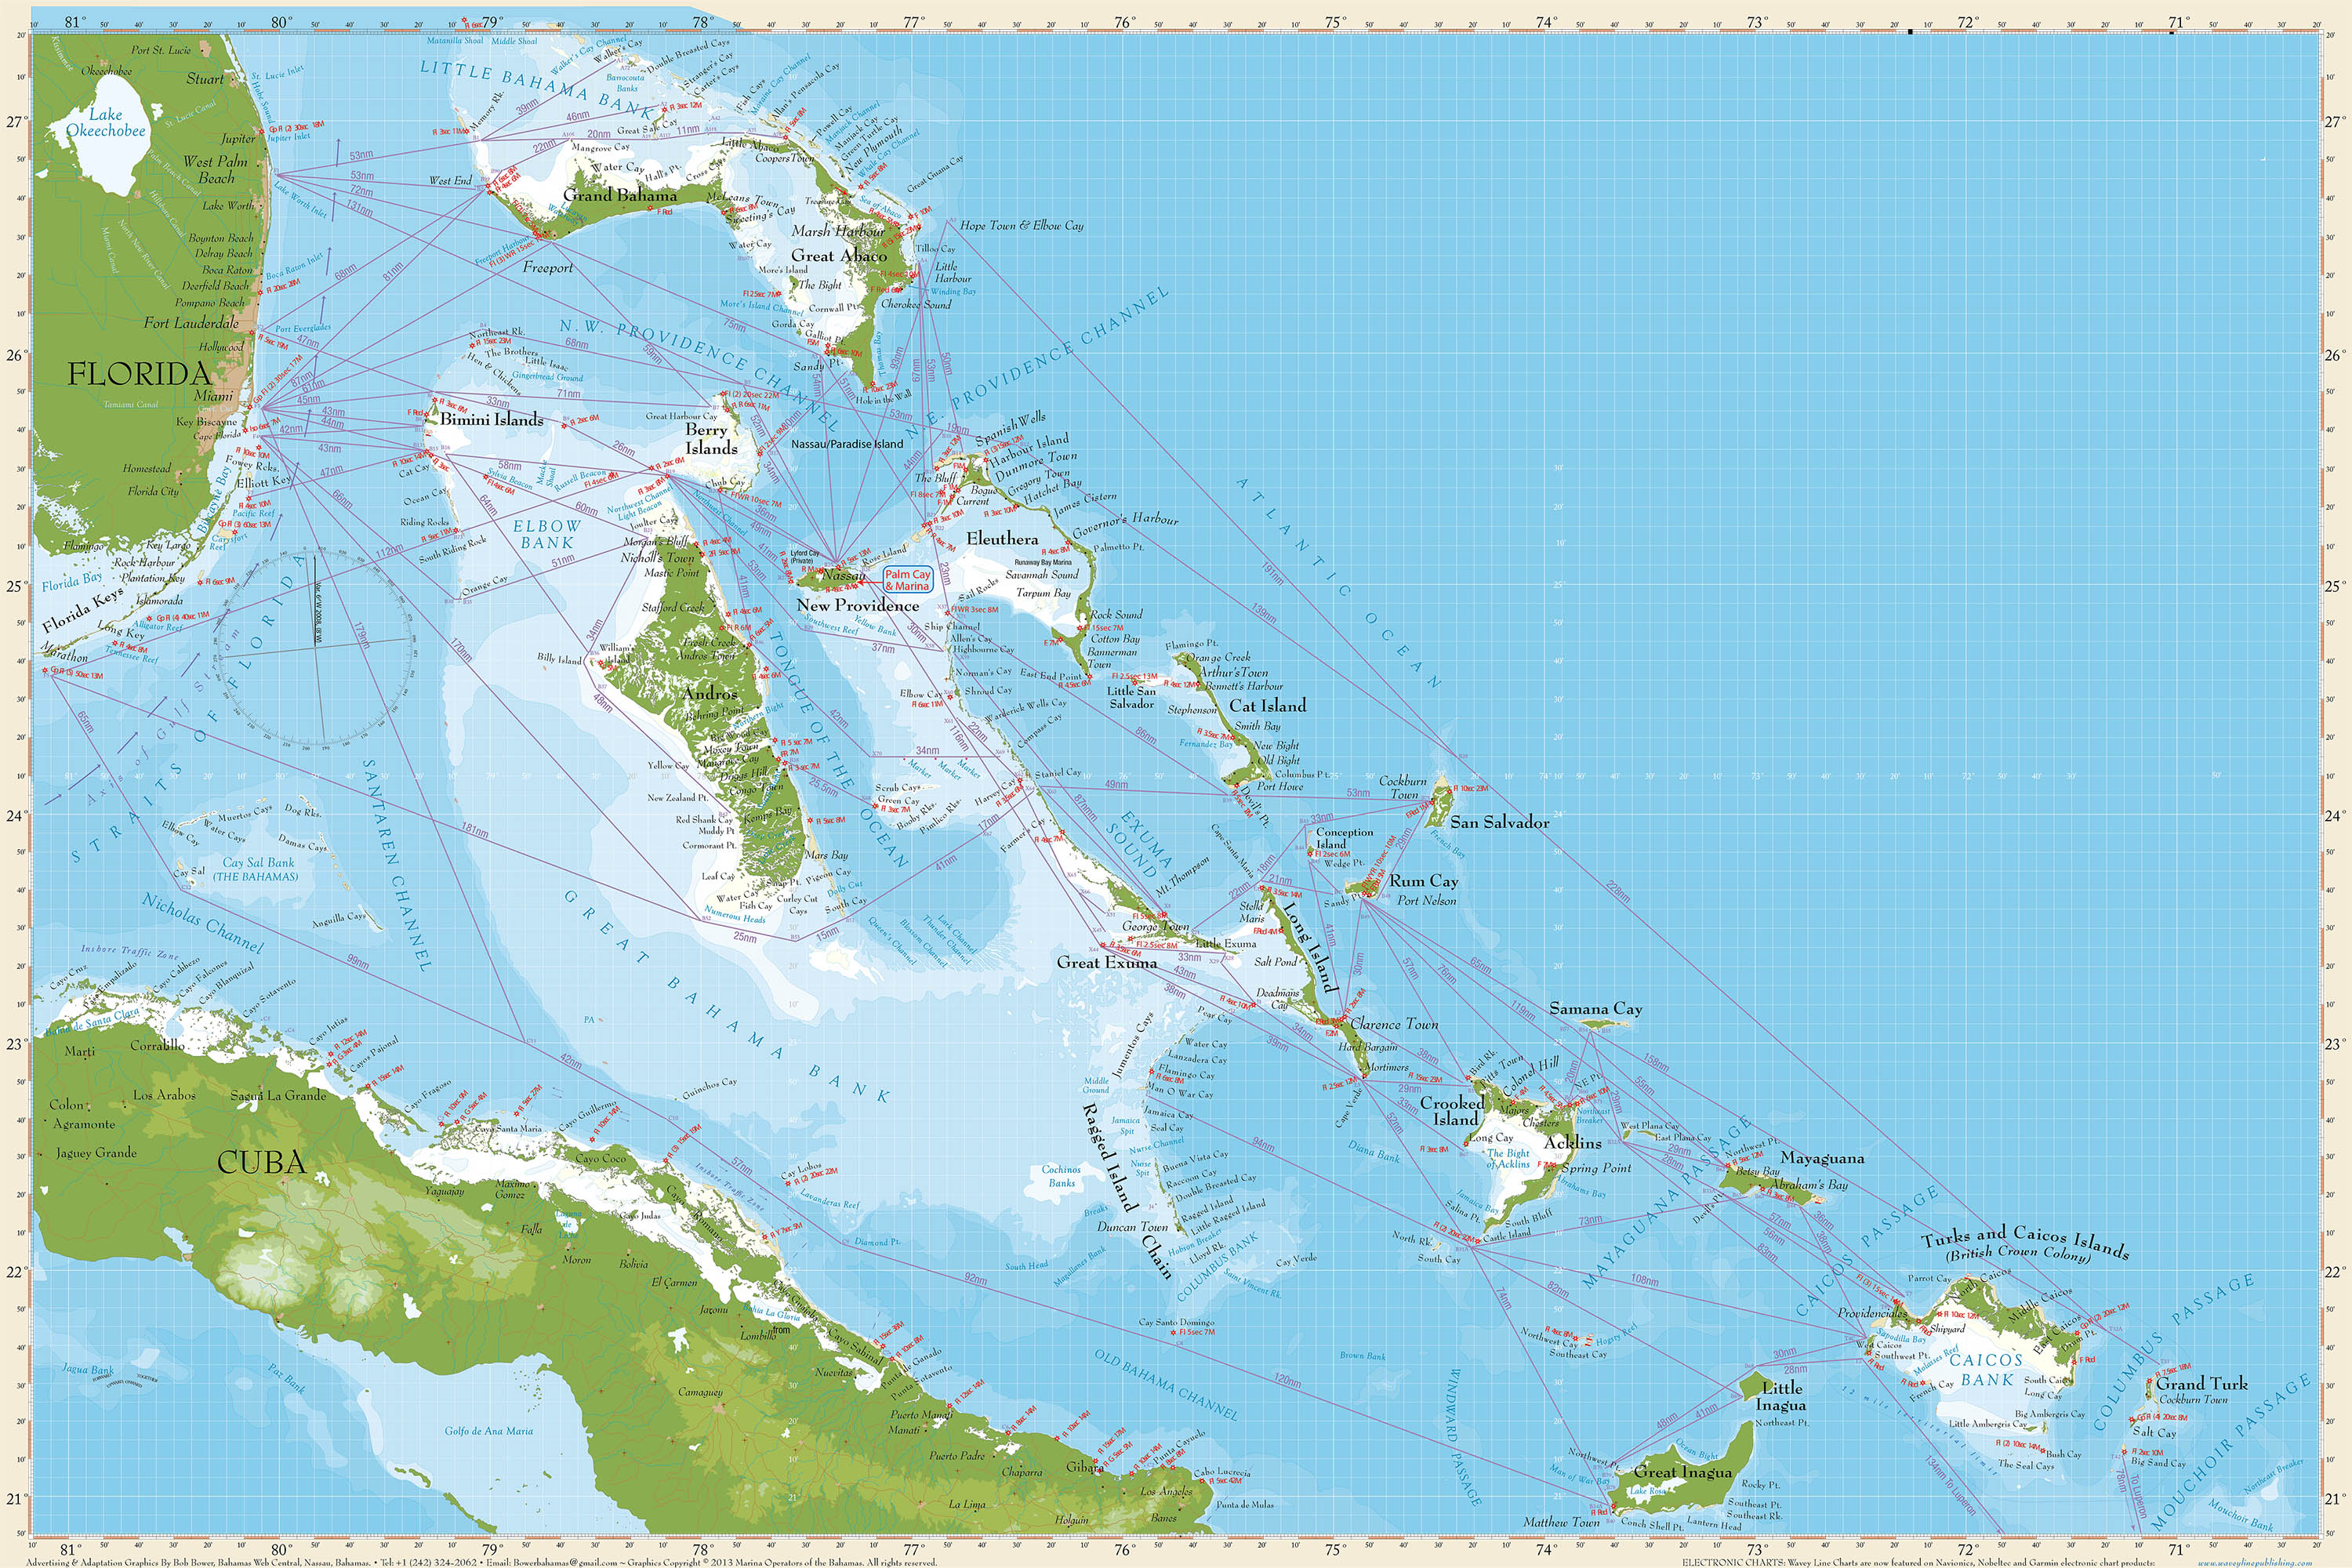 MARINE OPERATORS MAP OF THE BAHAMAS